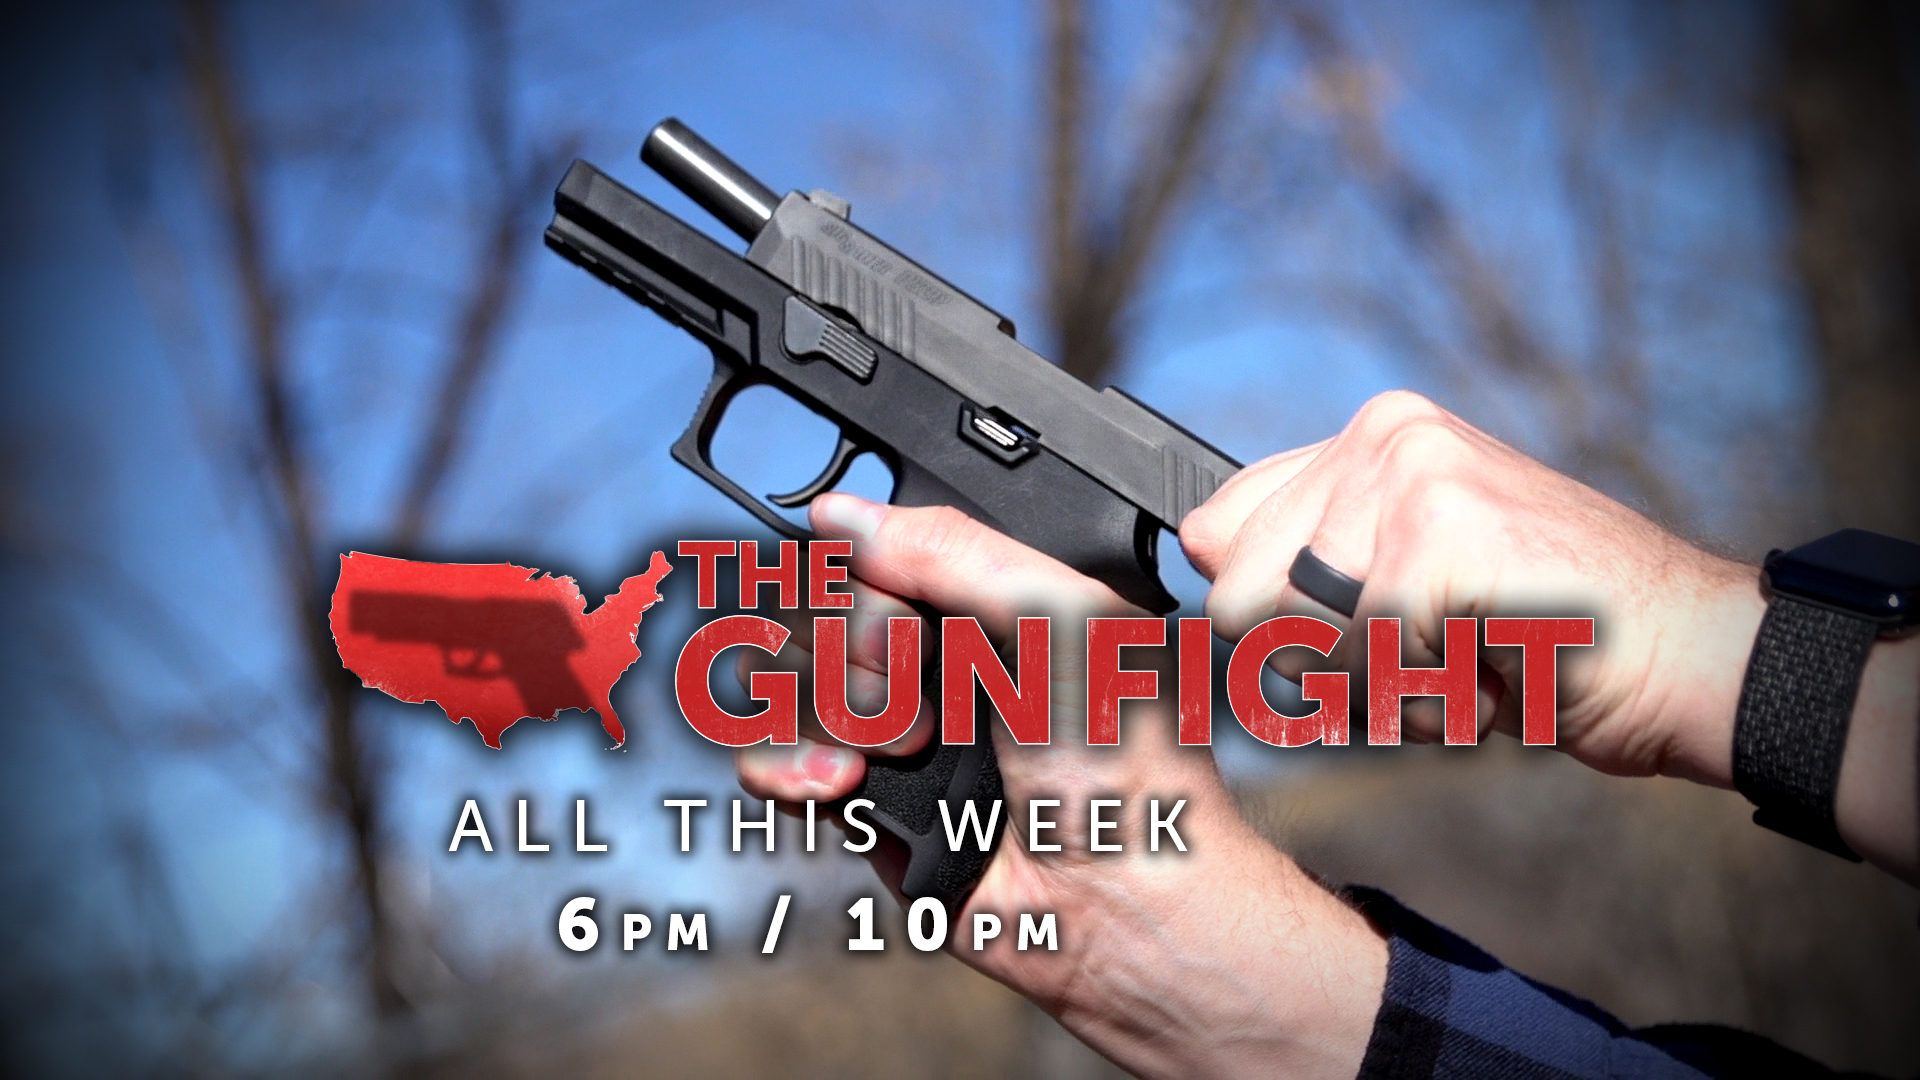 FSG GUN FIGHT THIS WEEK